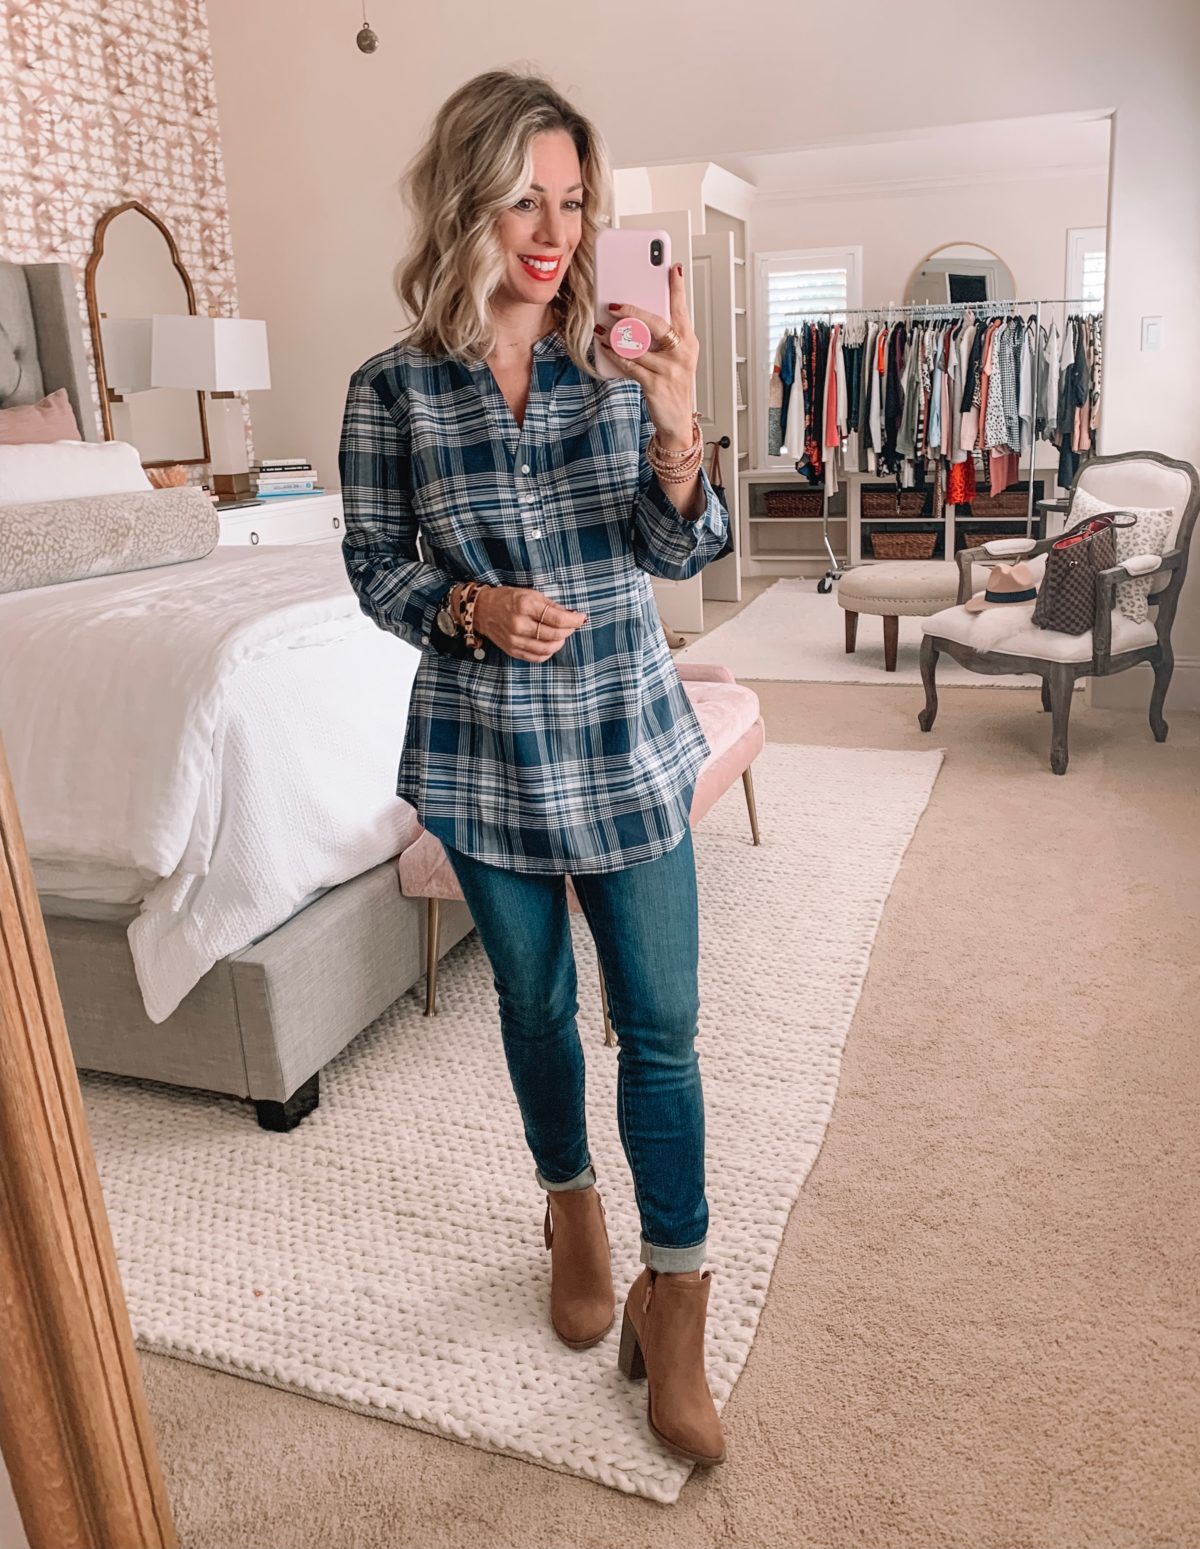 Amazon Prime Fashion- Plaid Top and Jeans